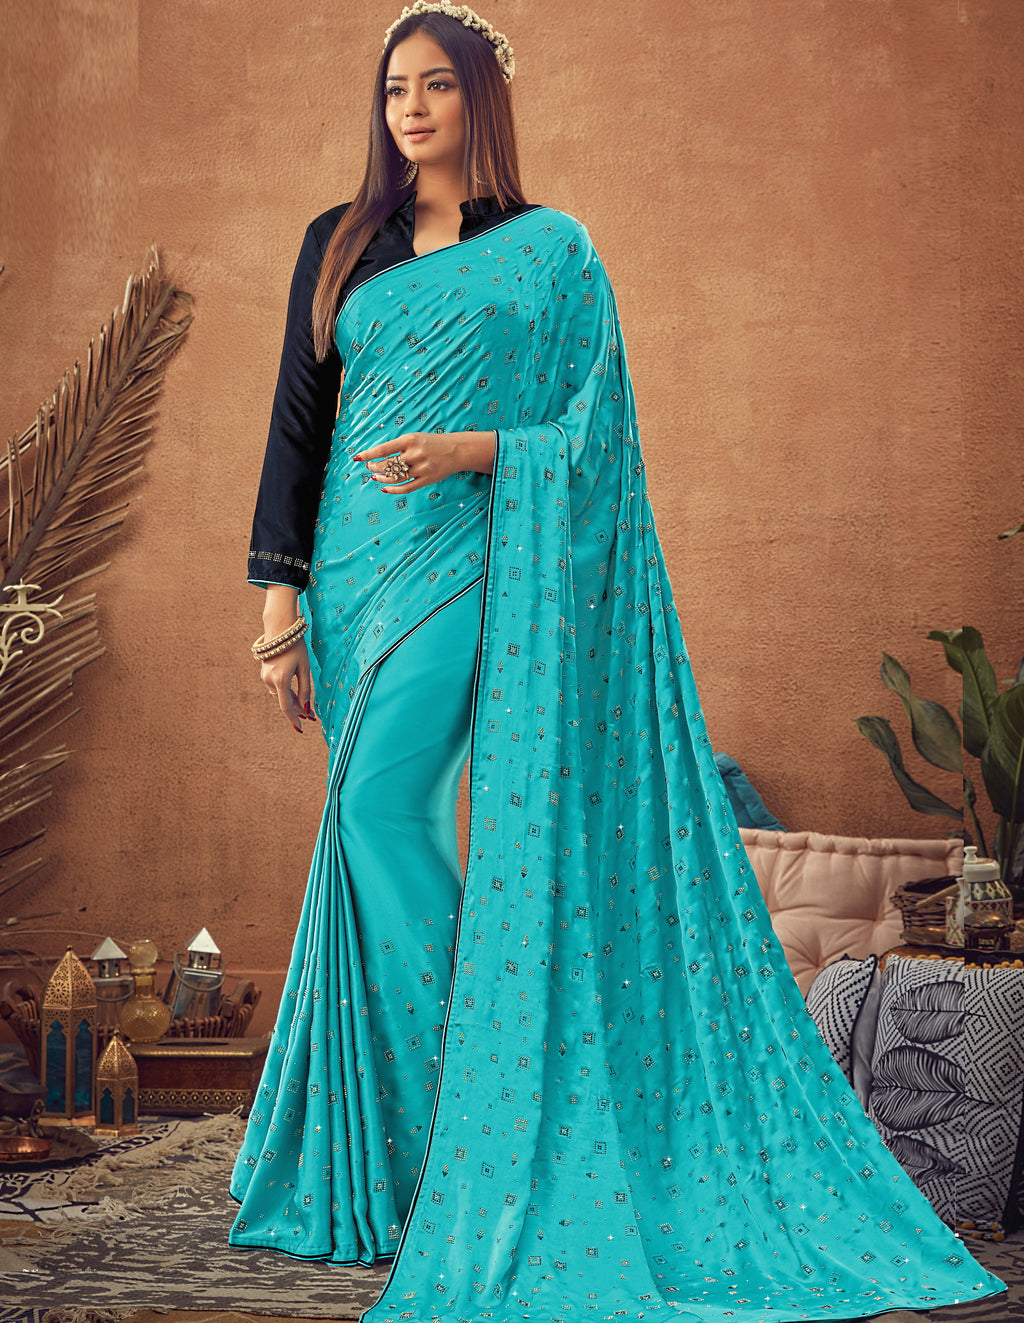 Firozi Color Crepe Silk Glamourous Occasion Wear Sarees NYF-6413